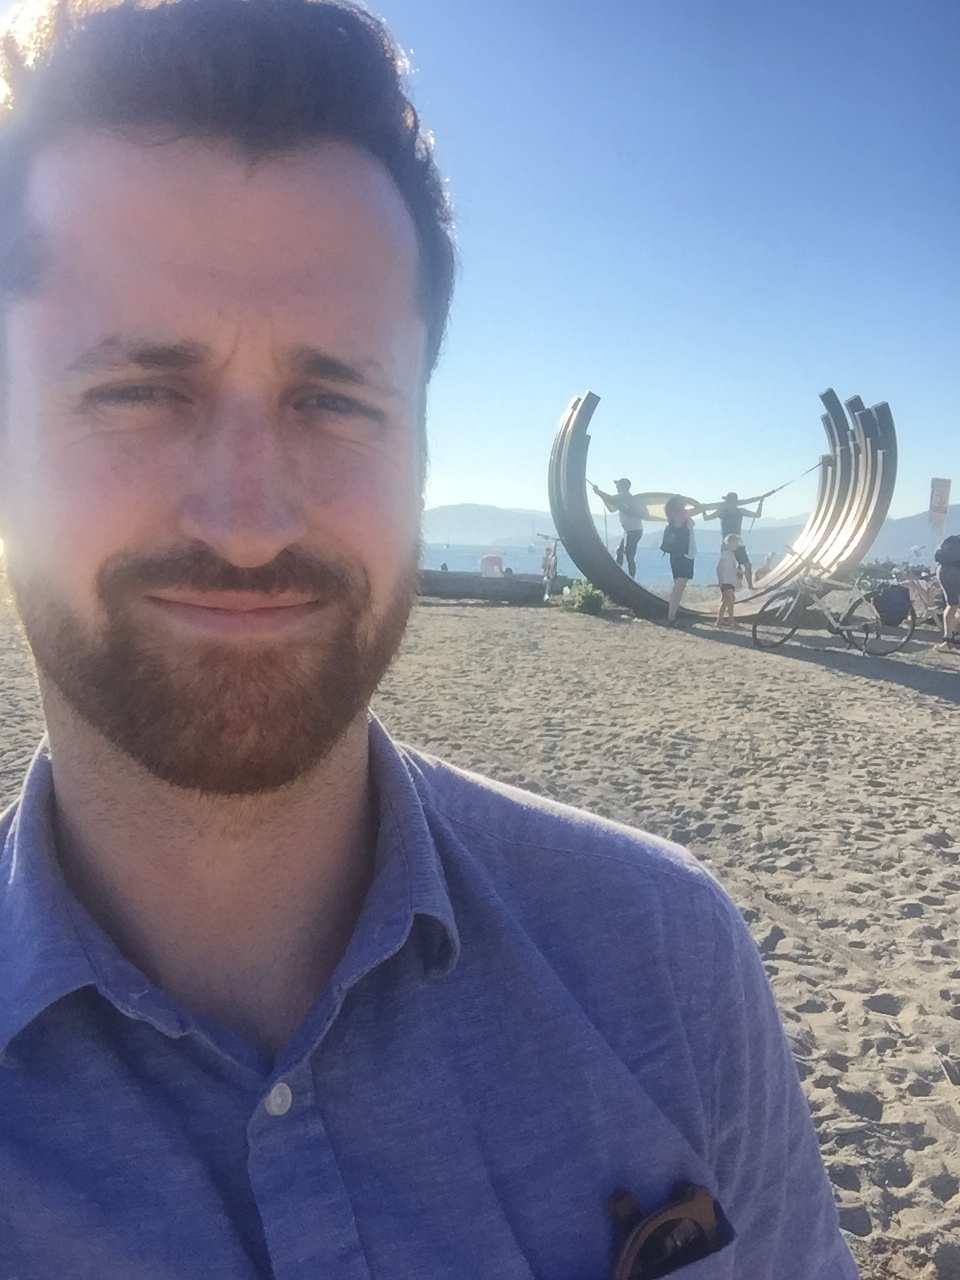 DavidStein - As a founding member of the VB Young Ambassadors I am inspired by the thought provoking public art being introduced to our city. I am a designer and artist with a degree in Landscape Architecture working on a variety of public and private projects.@davidbydavid